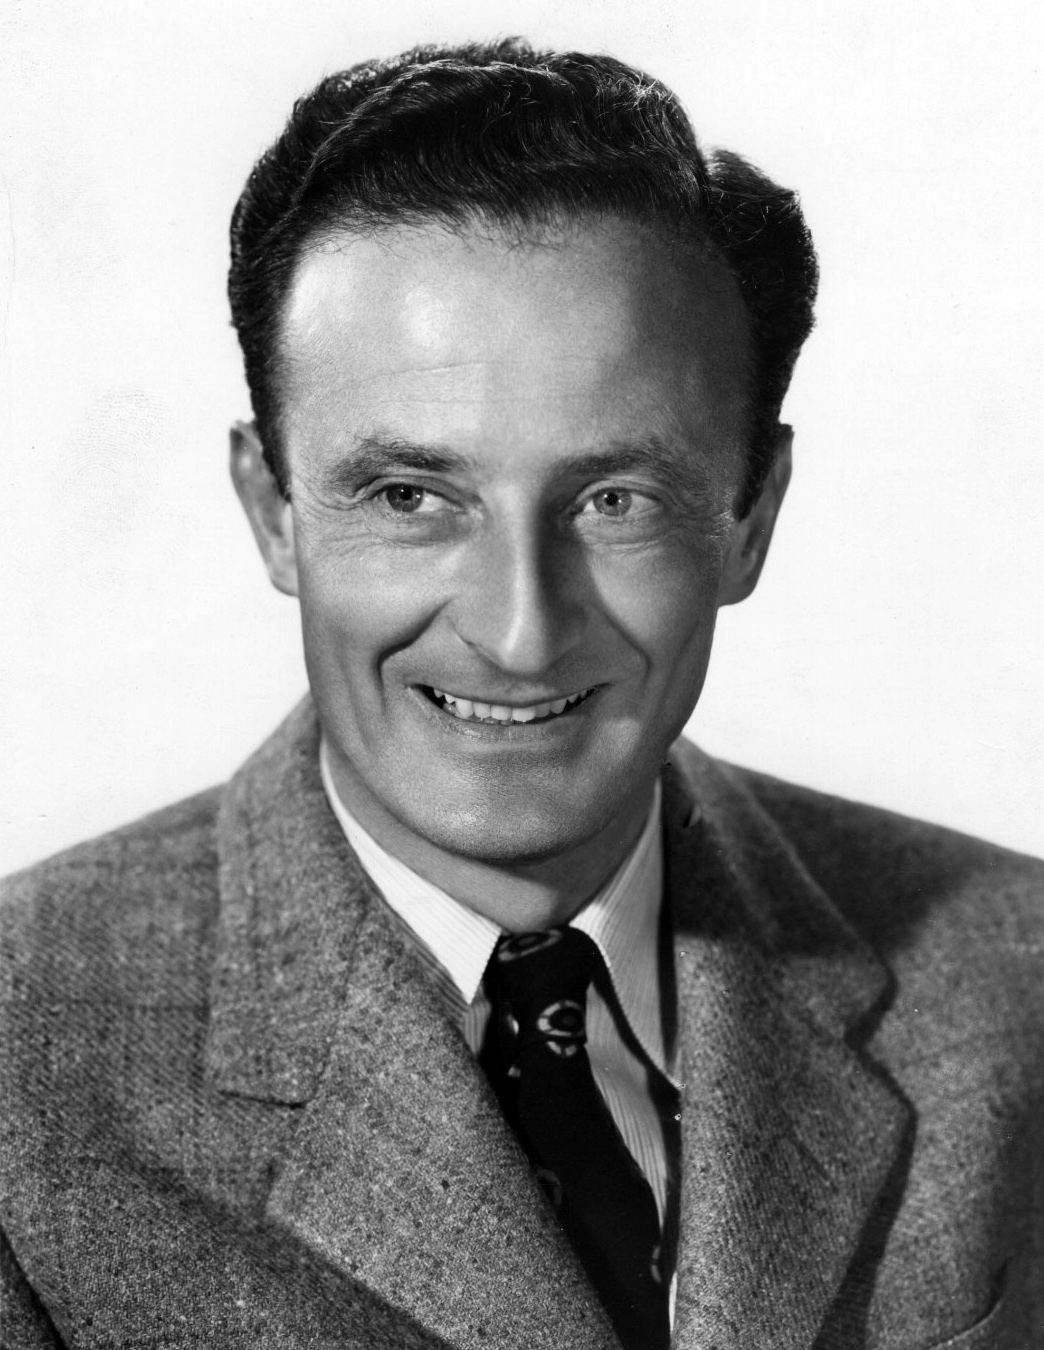 Zinnemann in the 1940s